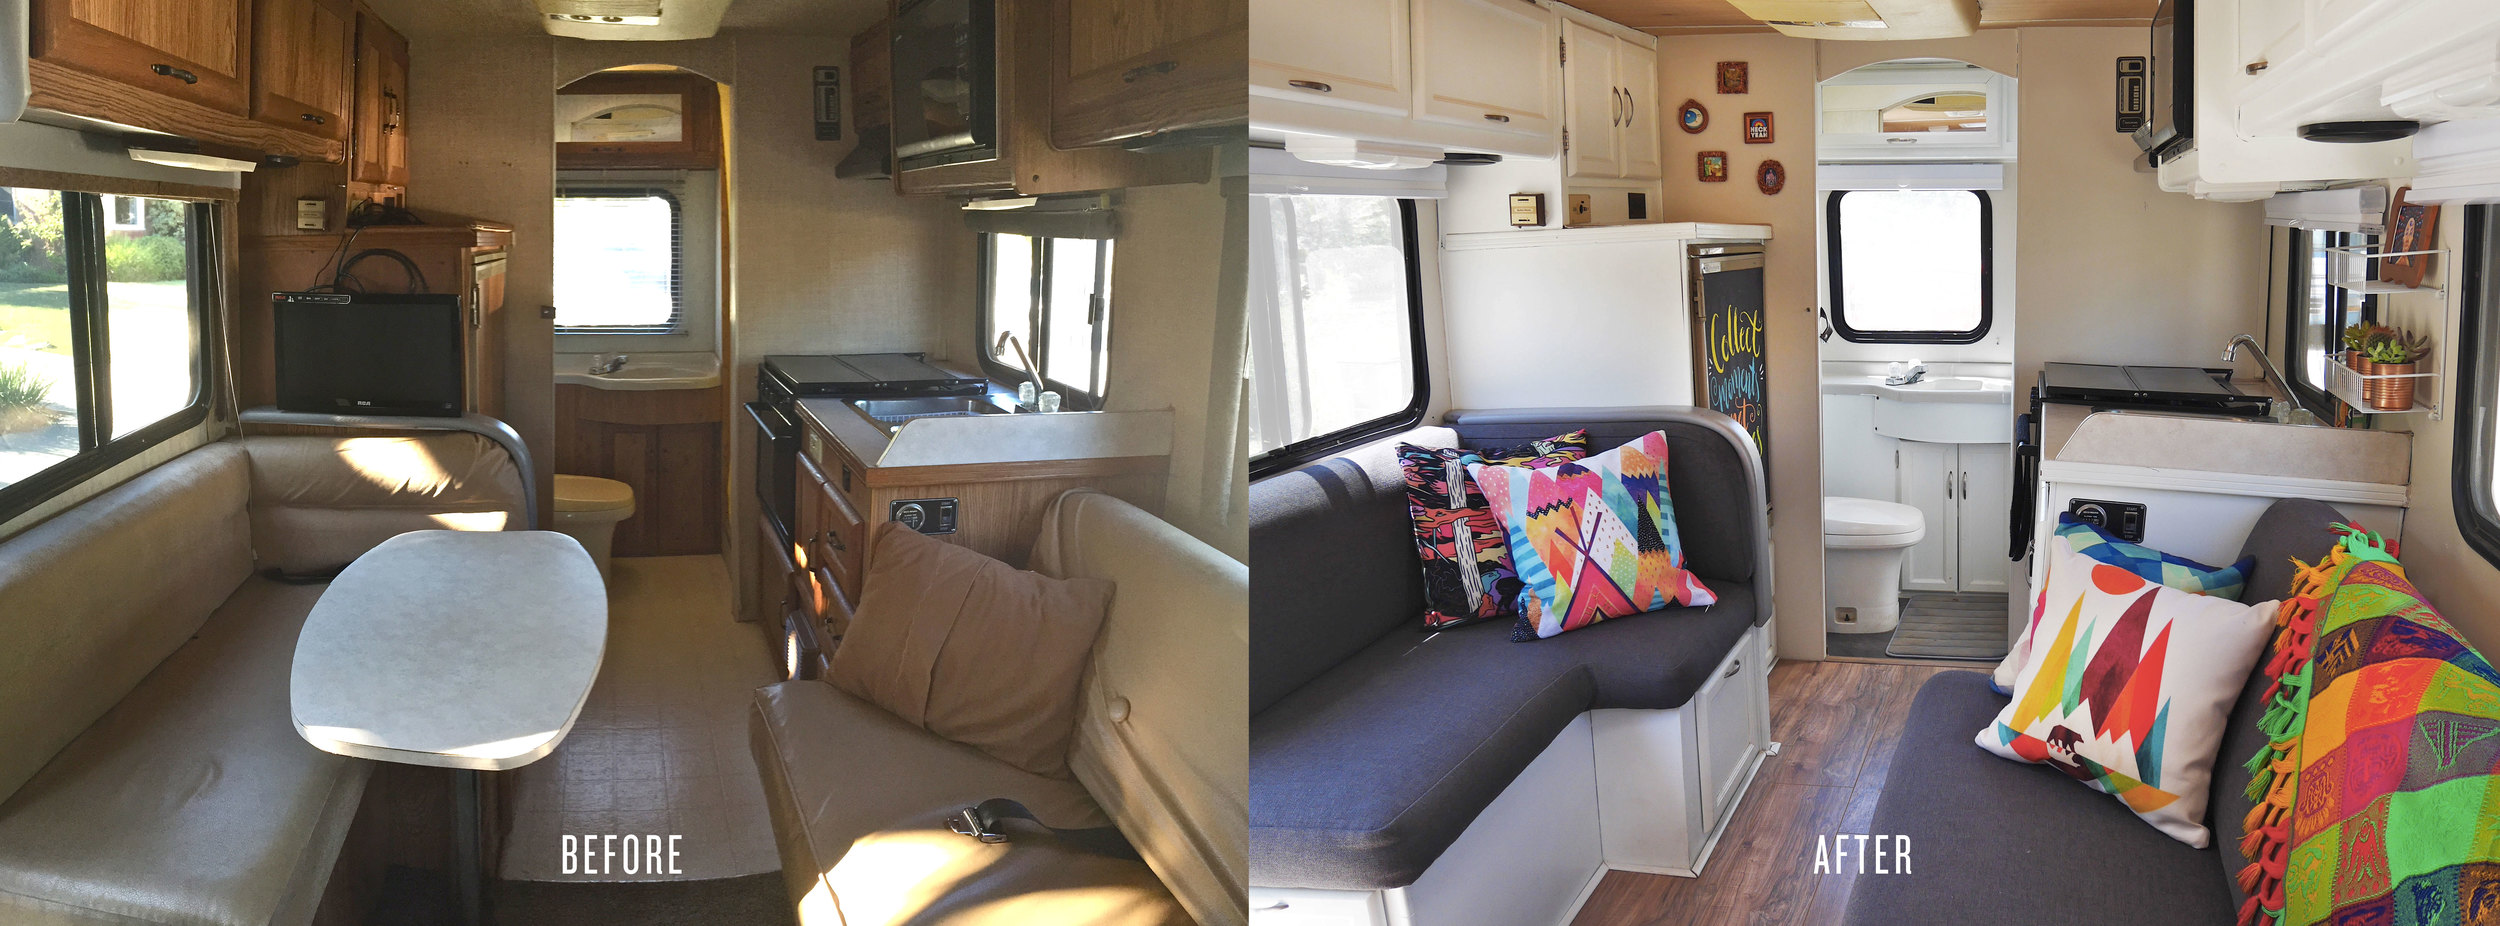 Check out  OUR RV  for the story of how we picked out our home on wheels,and step-by-step details of the entire renovation process.